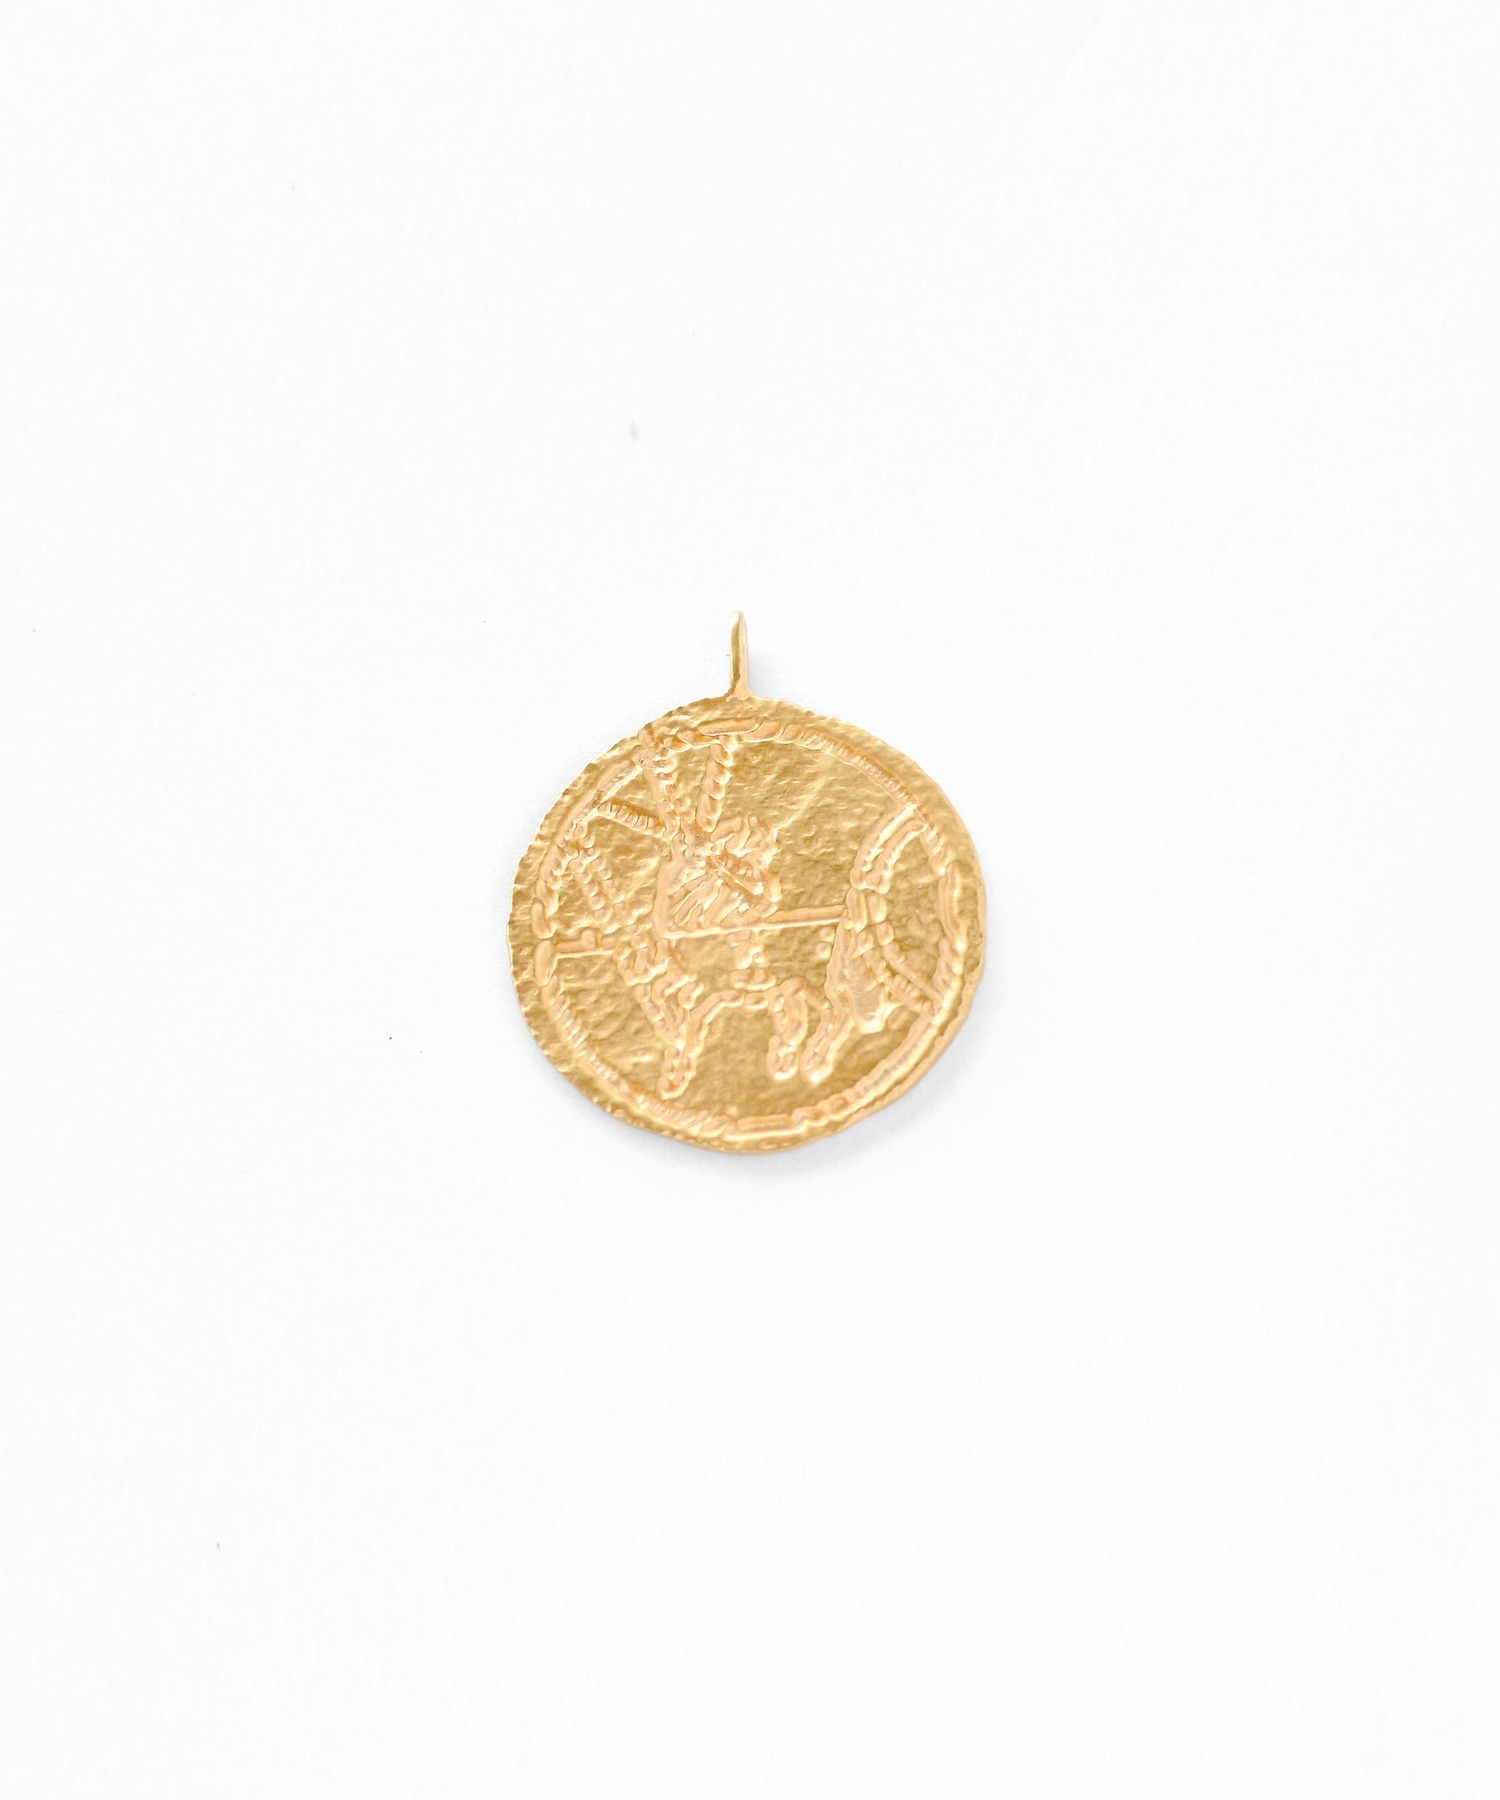 [ancient] ancient coin - ARTIDA charm